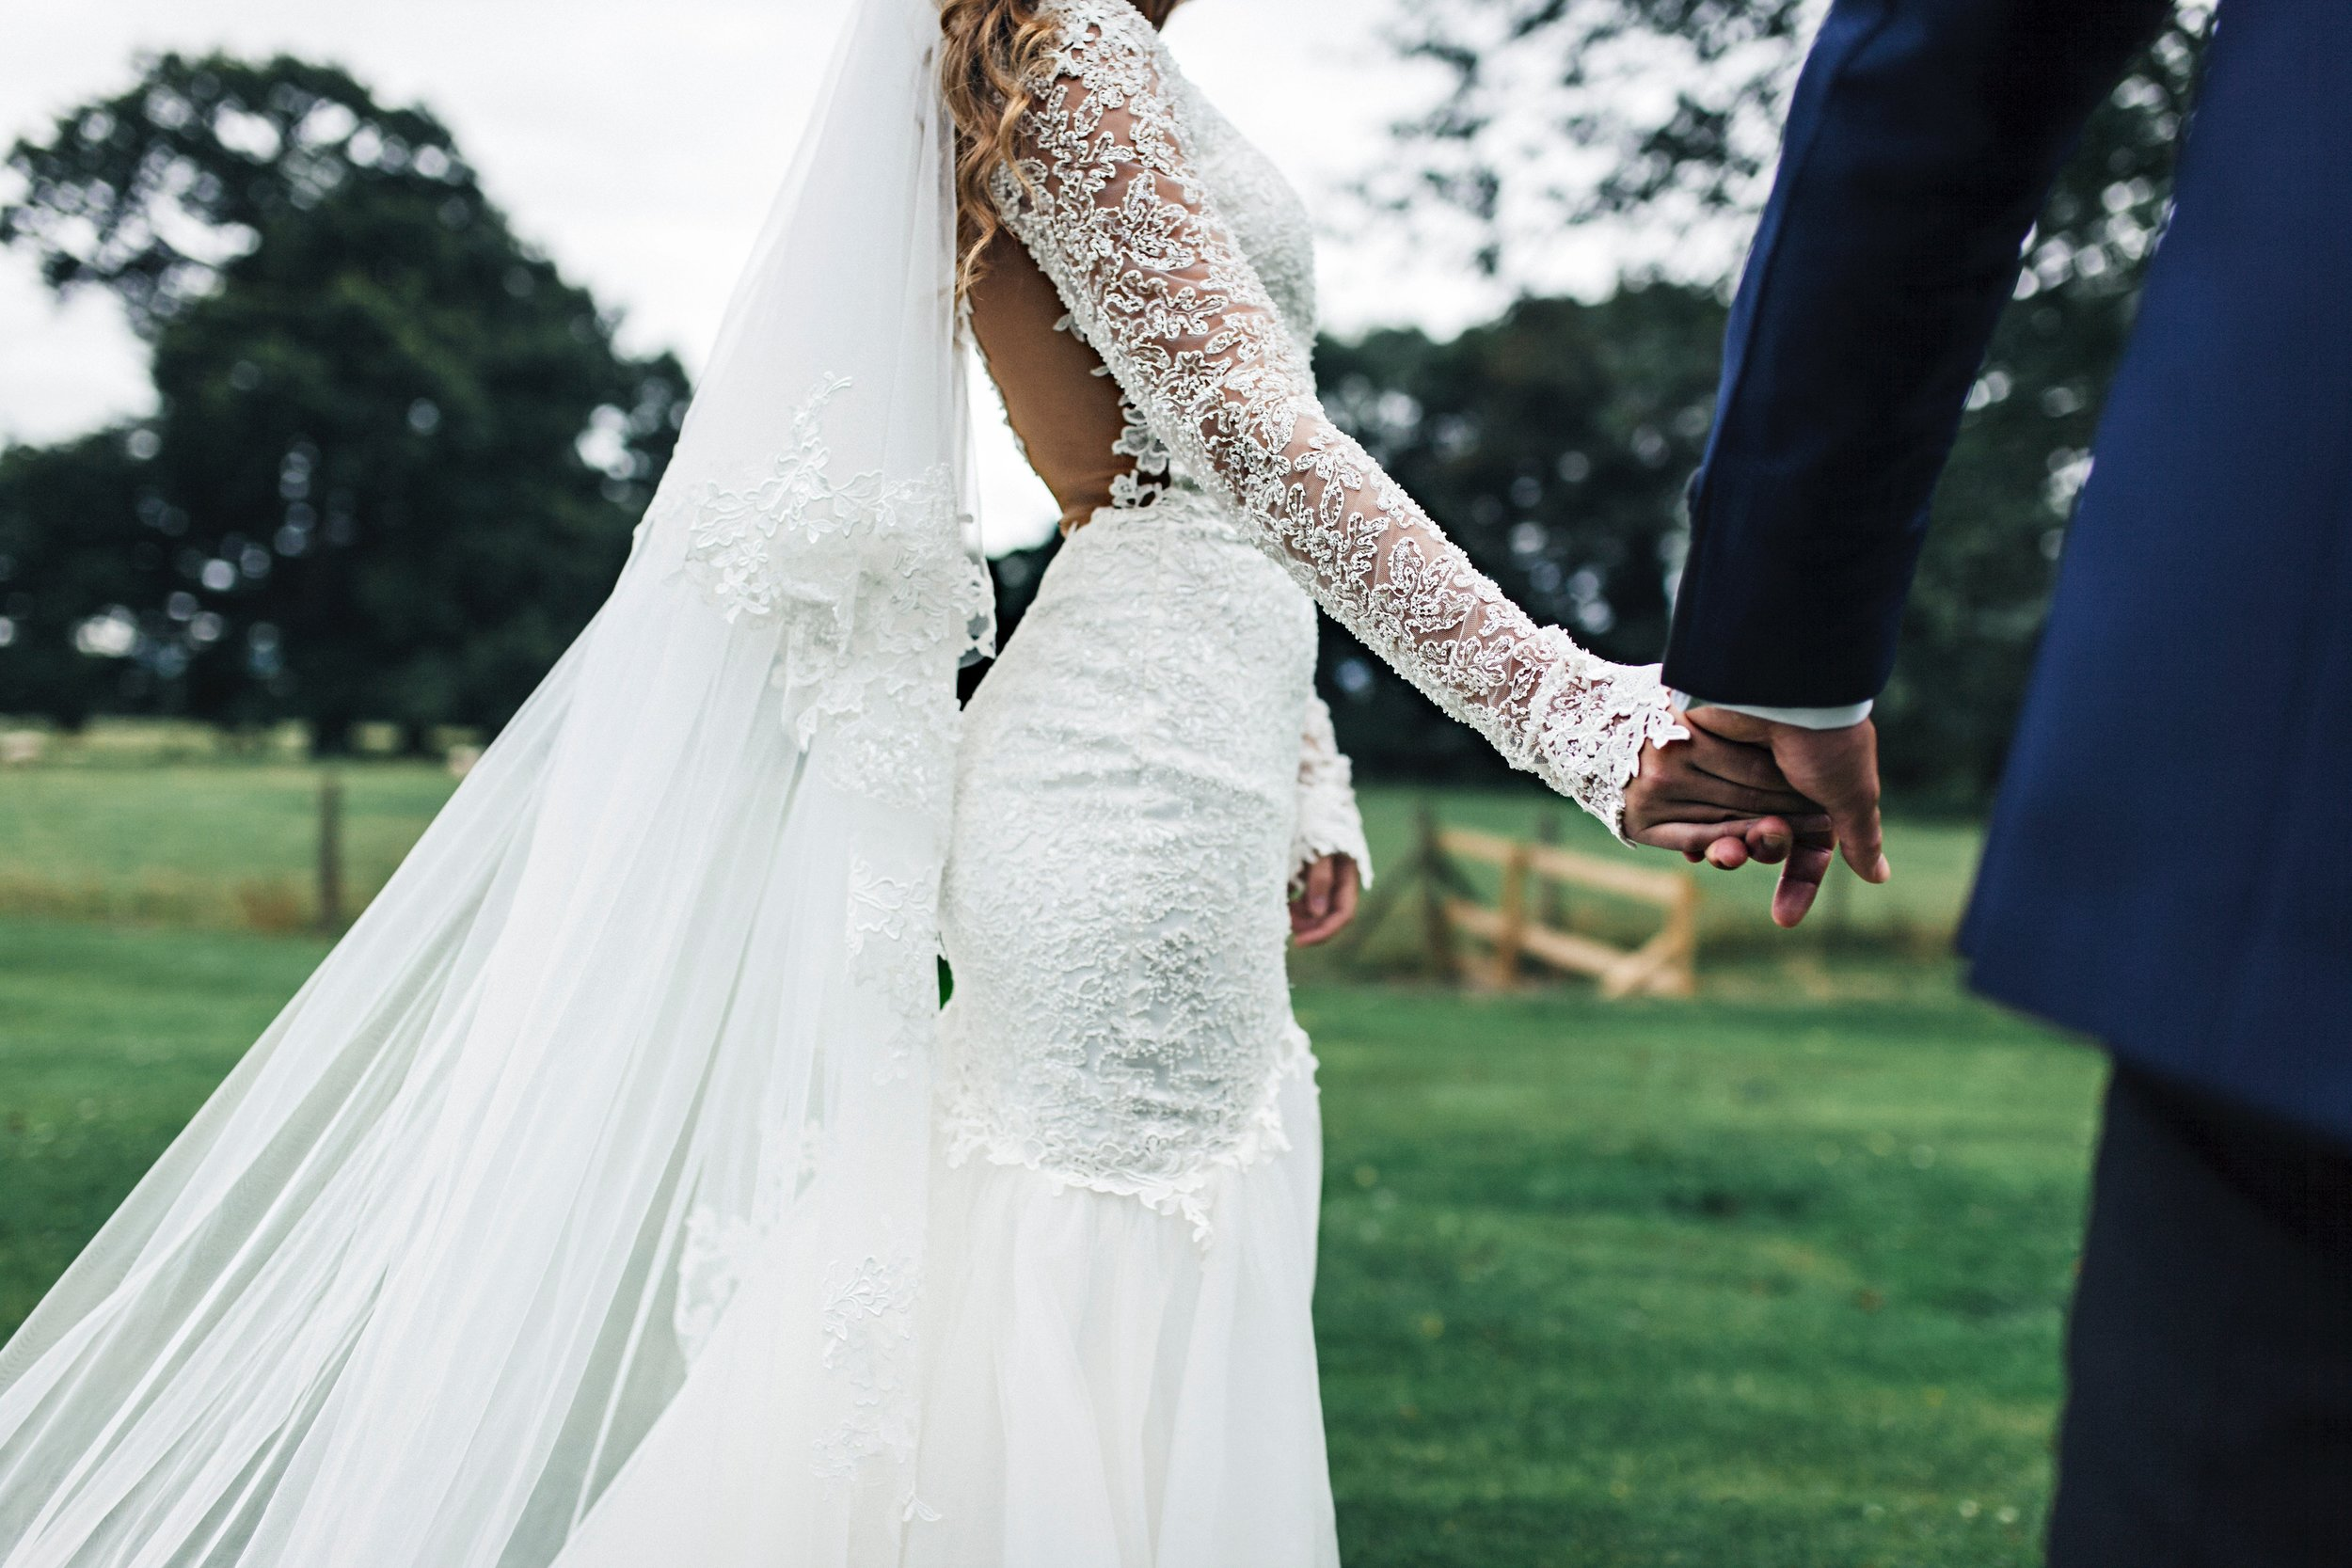 Lace Bridal Wedding Gown Holding Hands with Groom Veil Katie Laines Design and Coordination